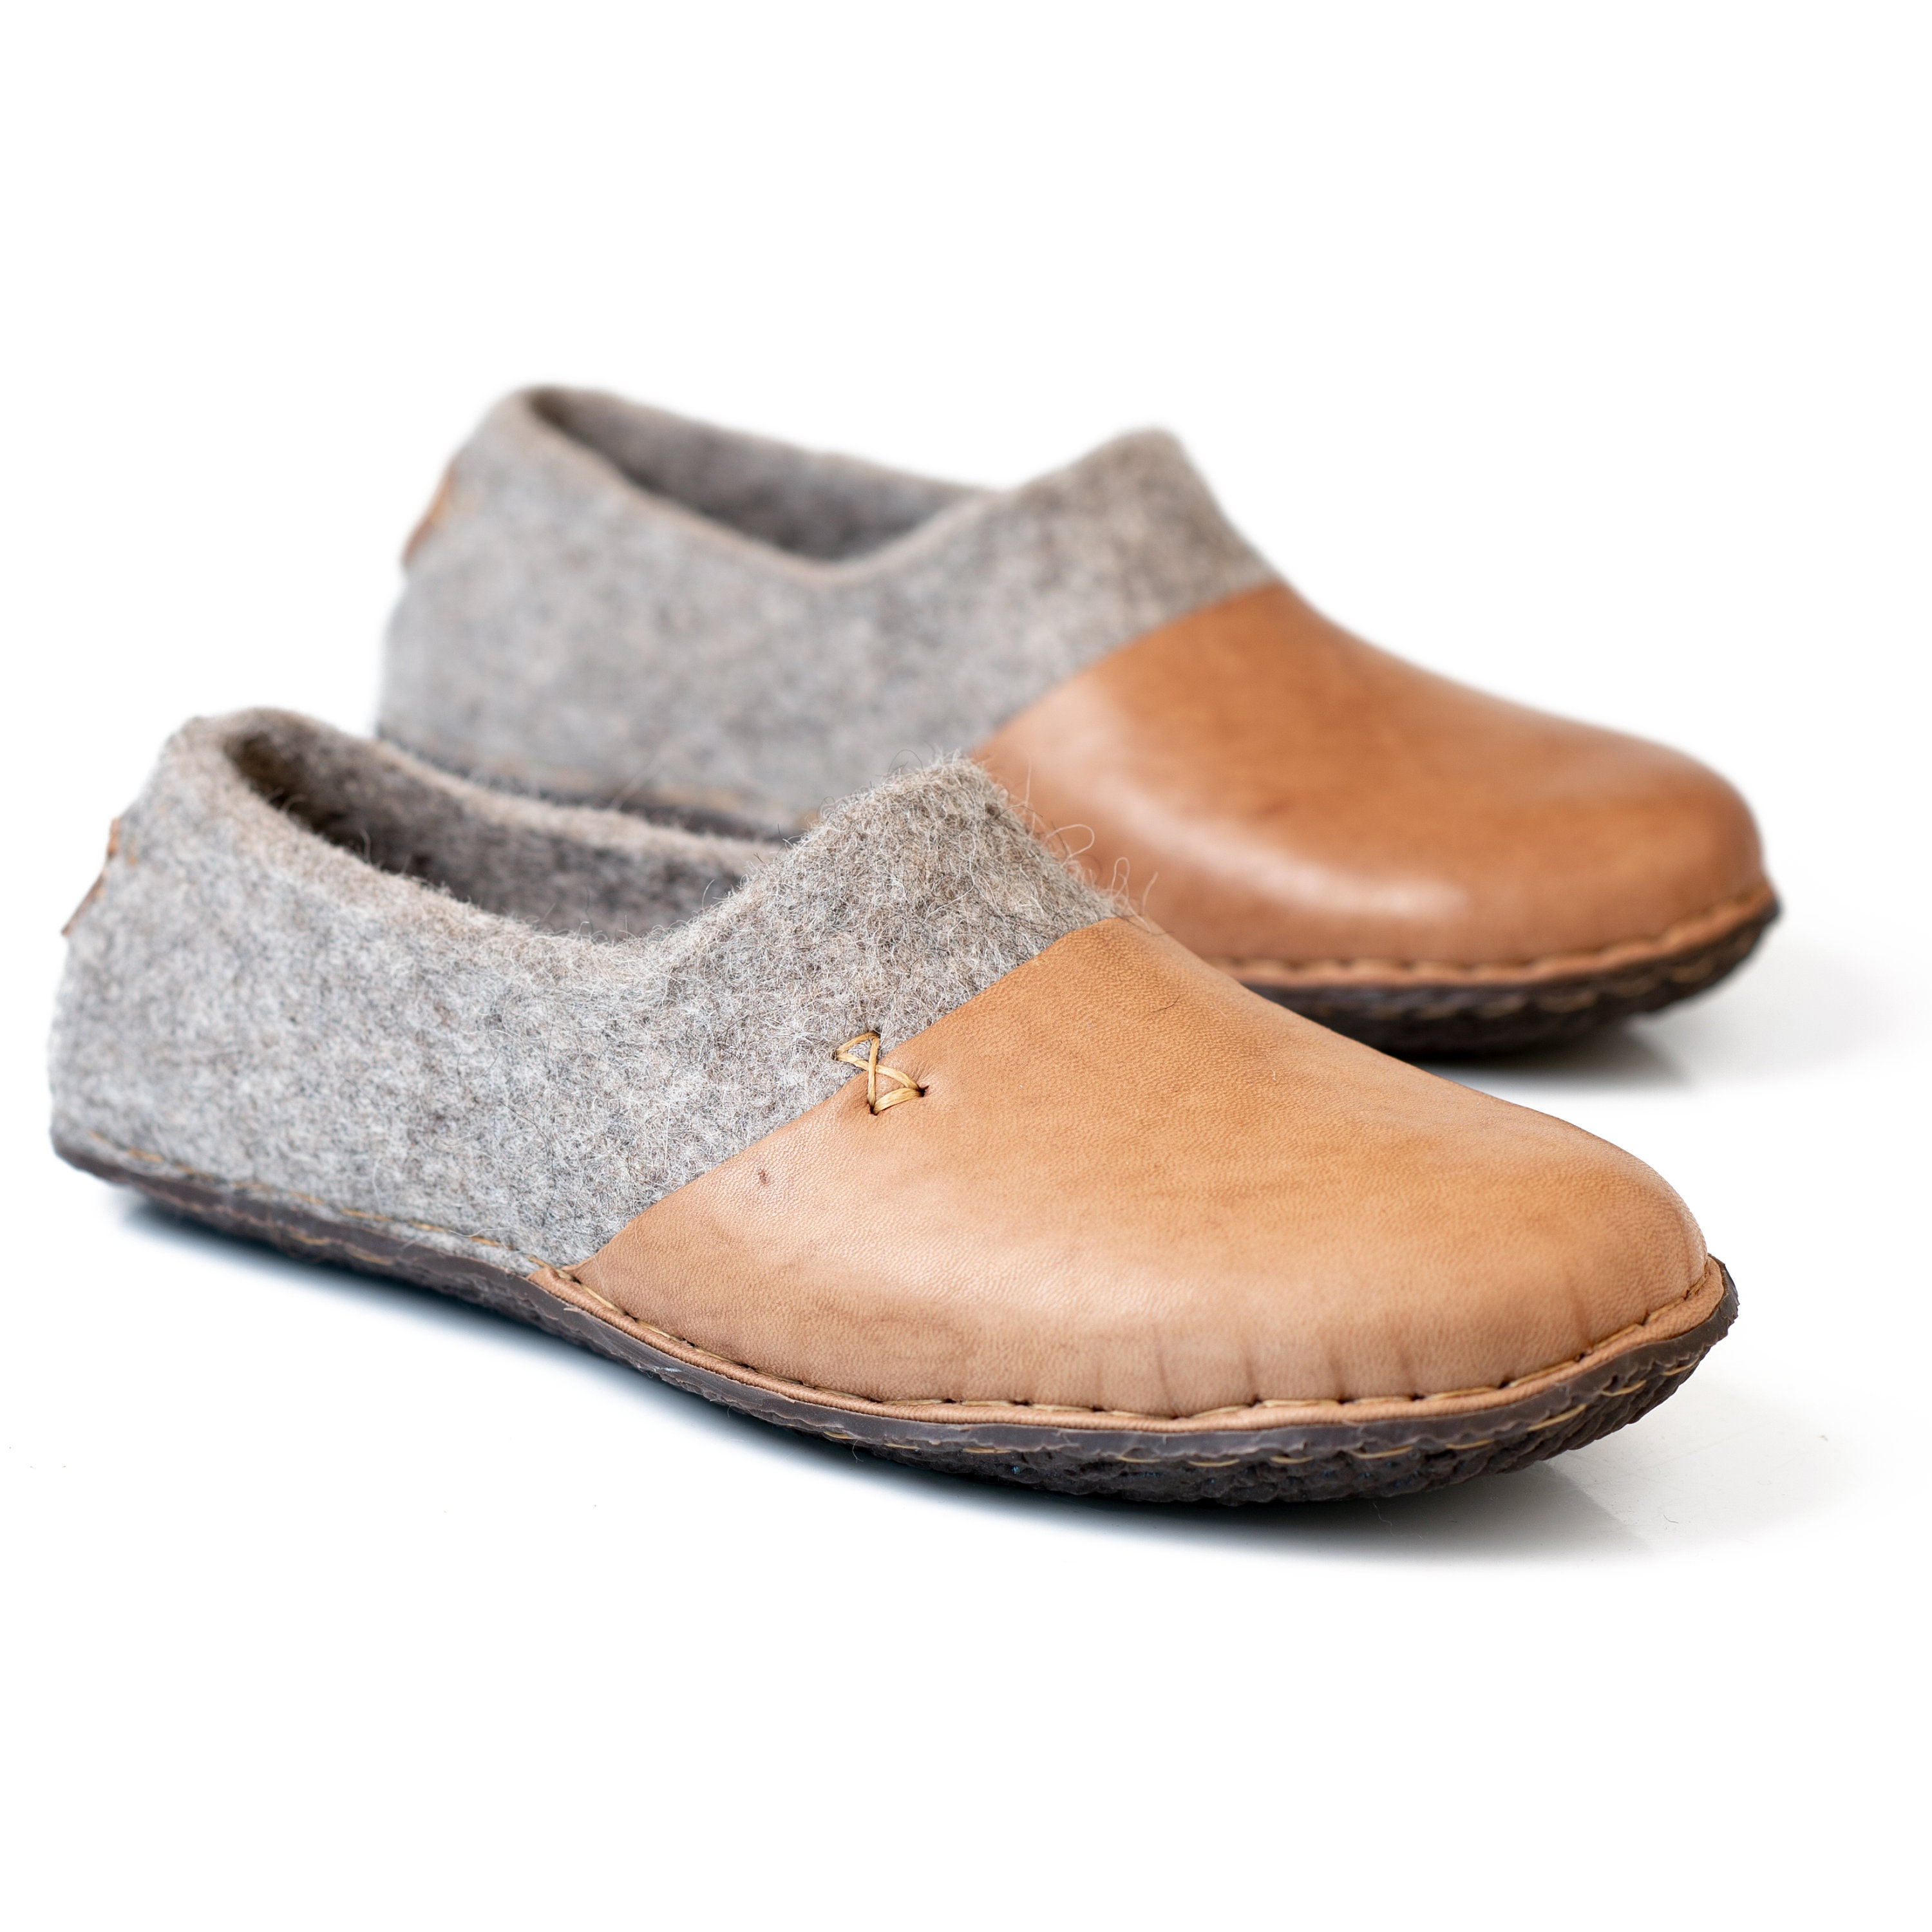 a1e40b087deb6 READY TO SHIP womens size 6 Beige felted wool clogs slippers with ...